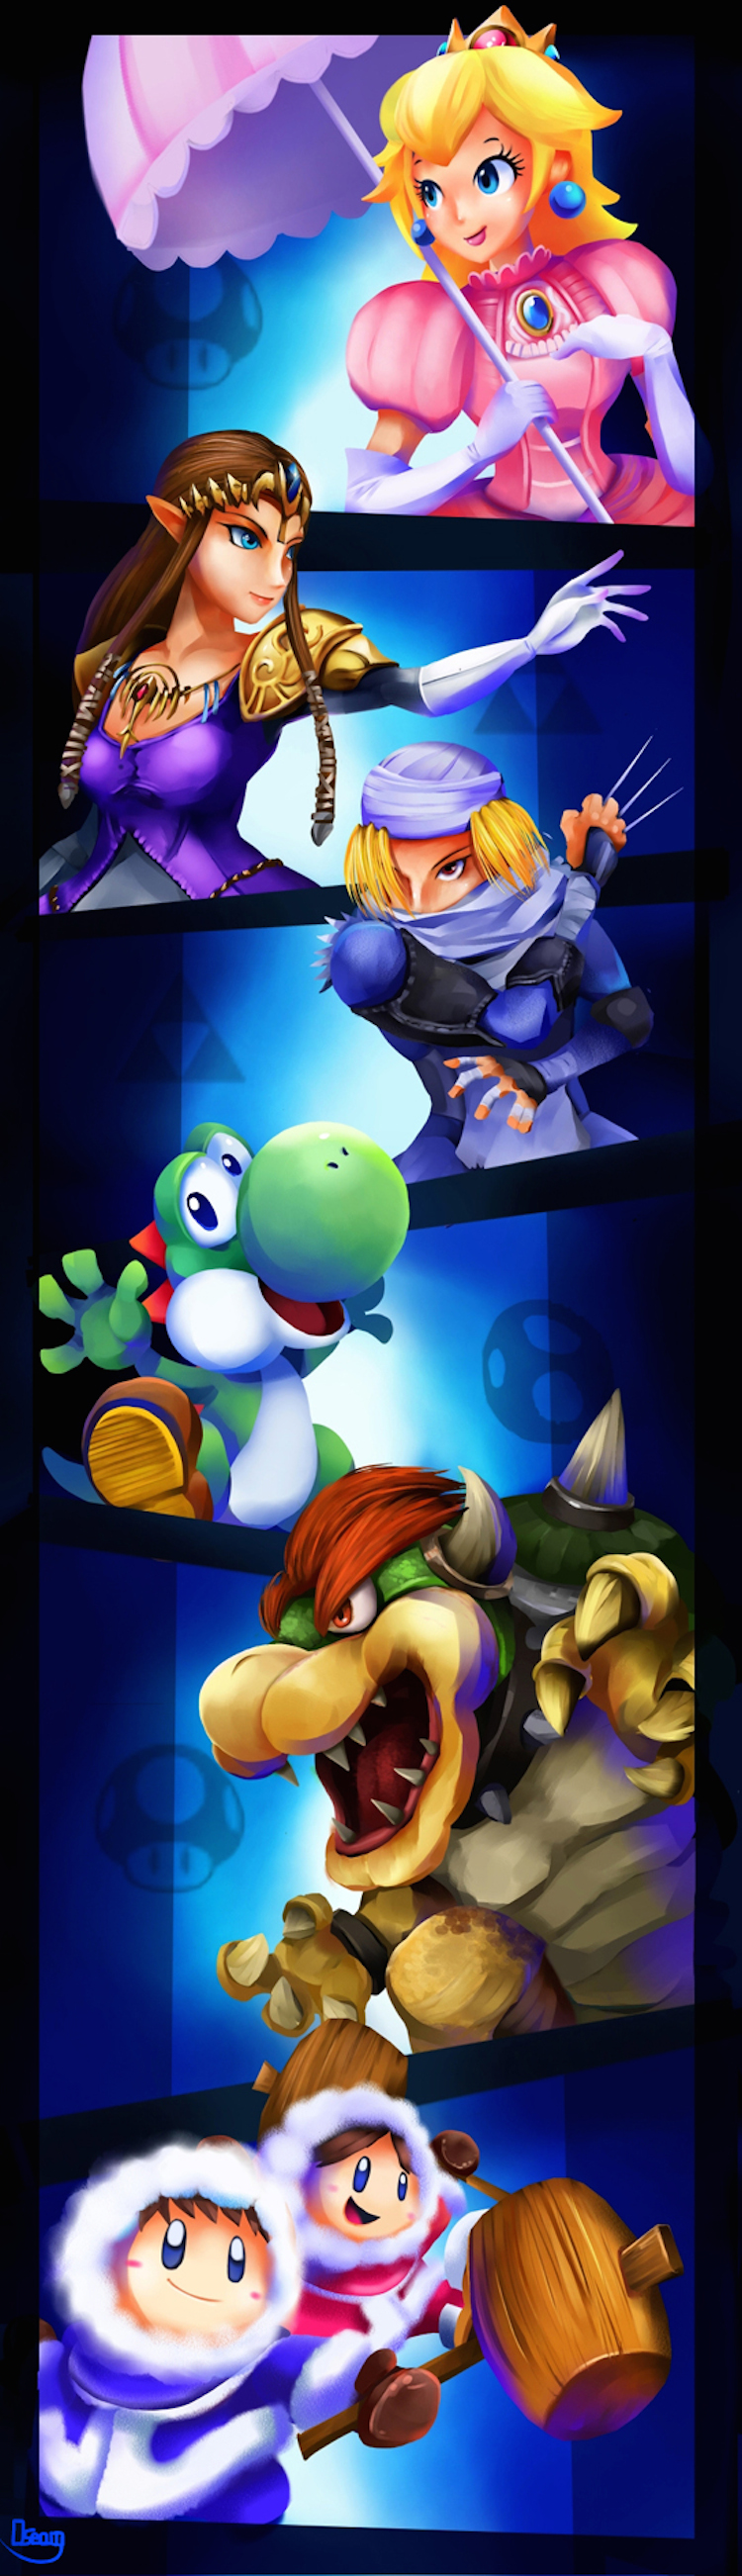 Smash_Brothers_Veterans_2_by_zgul_osr1113